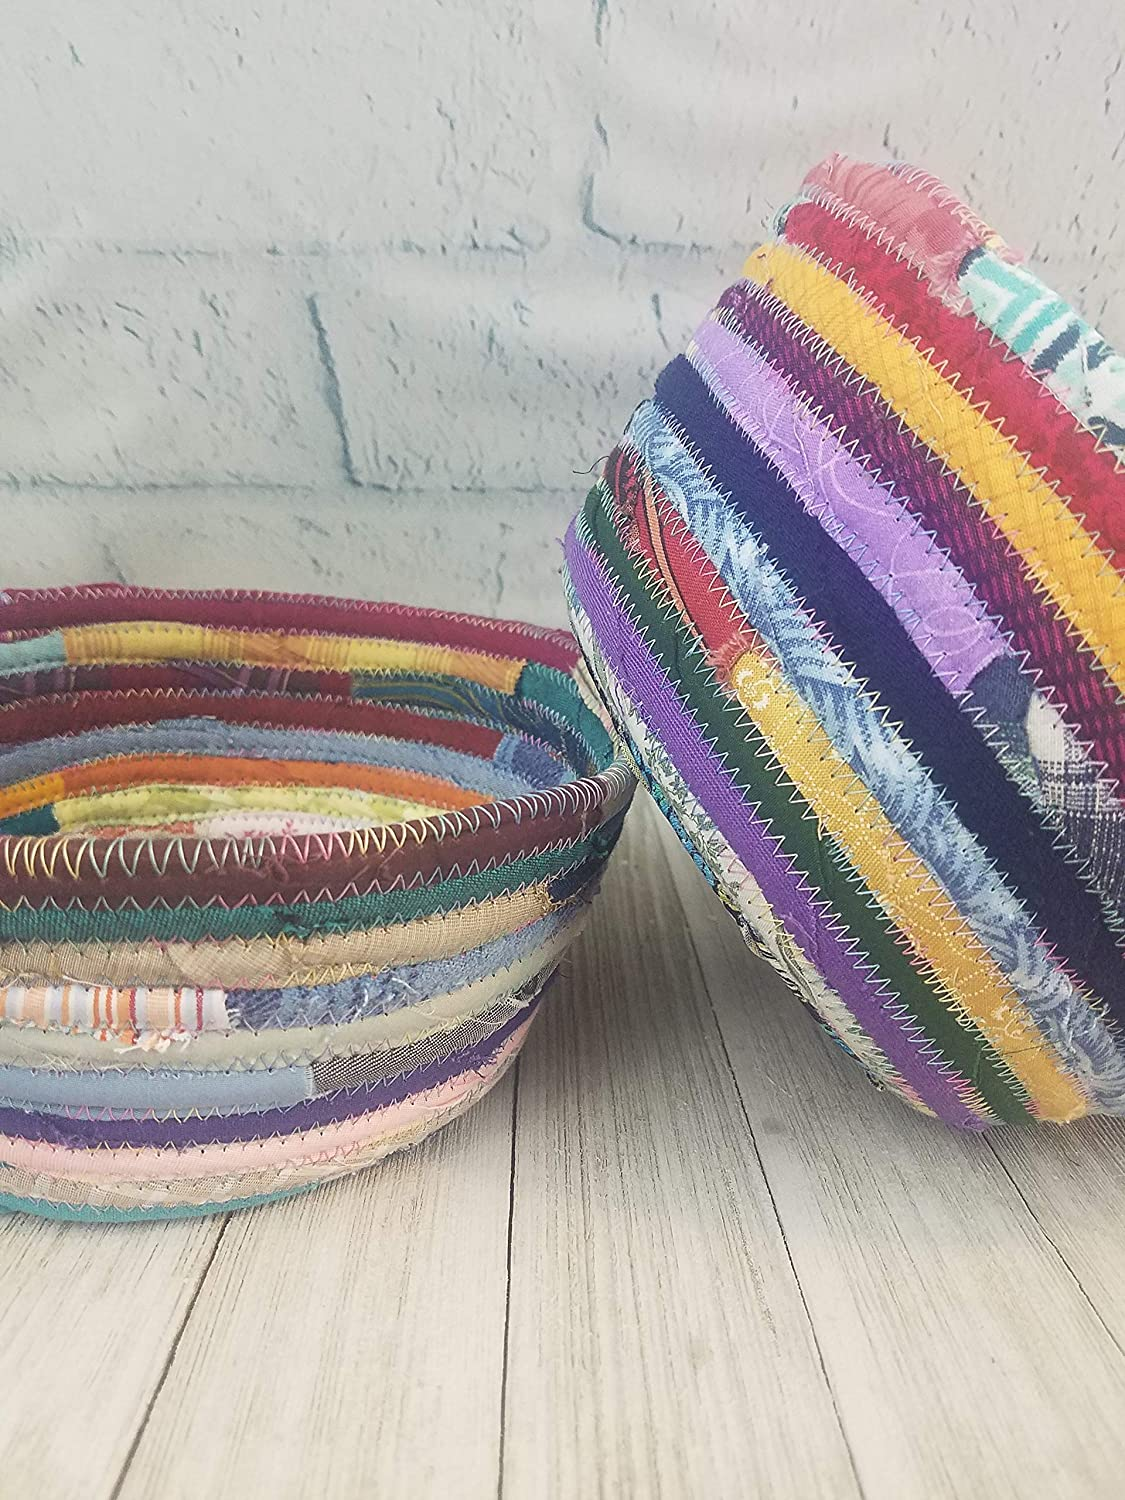 Handmade Upcycled Bohemian Style Gift Multicolor Fabric Basket or Bowl Boho Hippie Unique Colorful